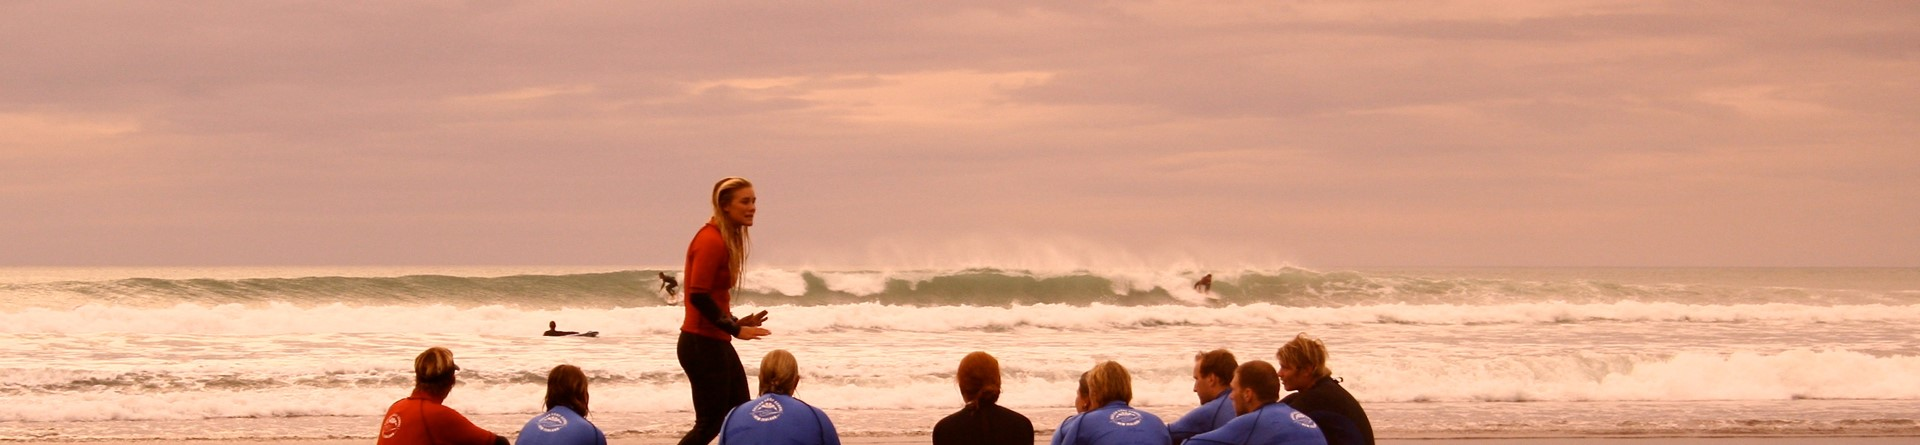 Surf lesson on Ngarunui Beach, Raglan, NZ